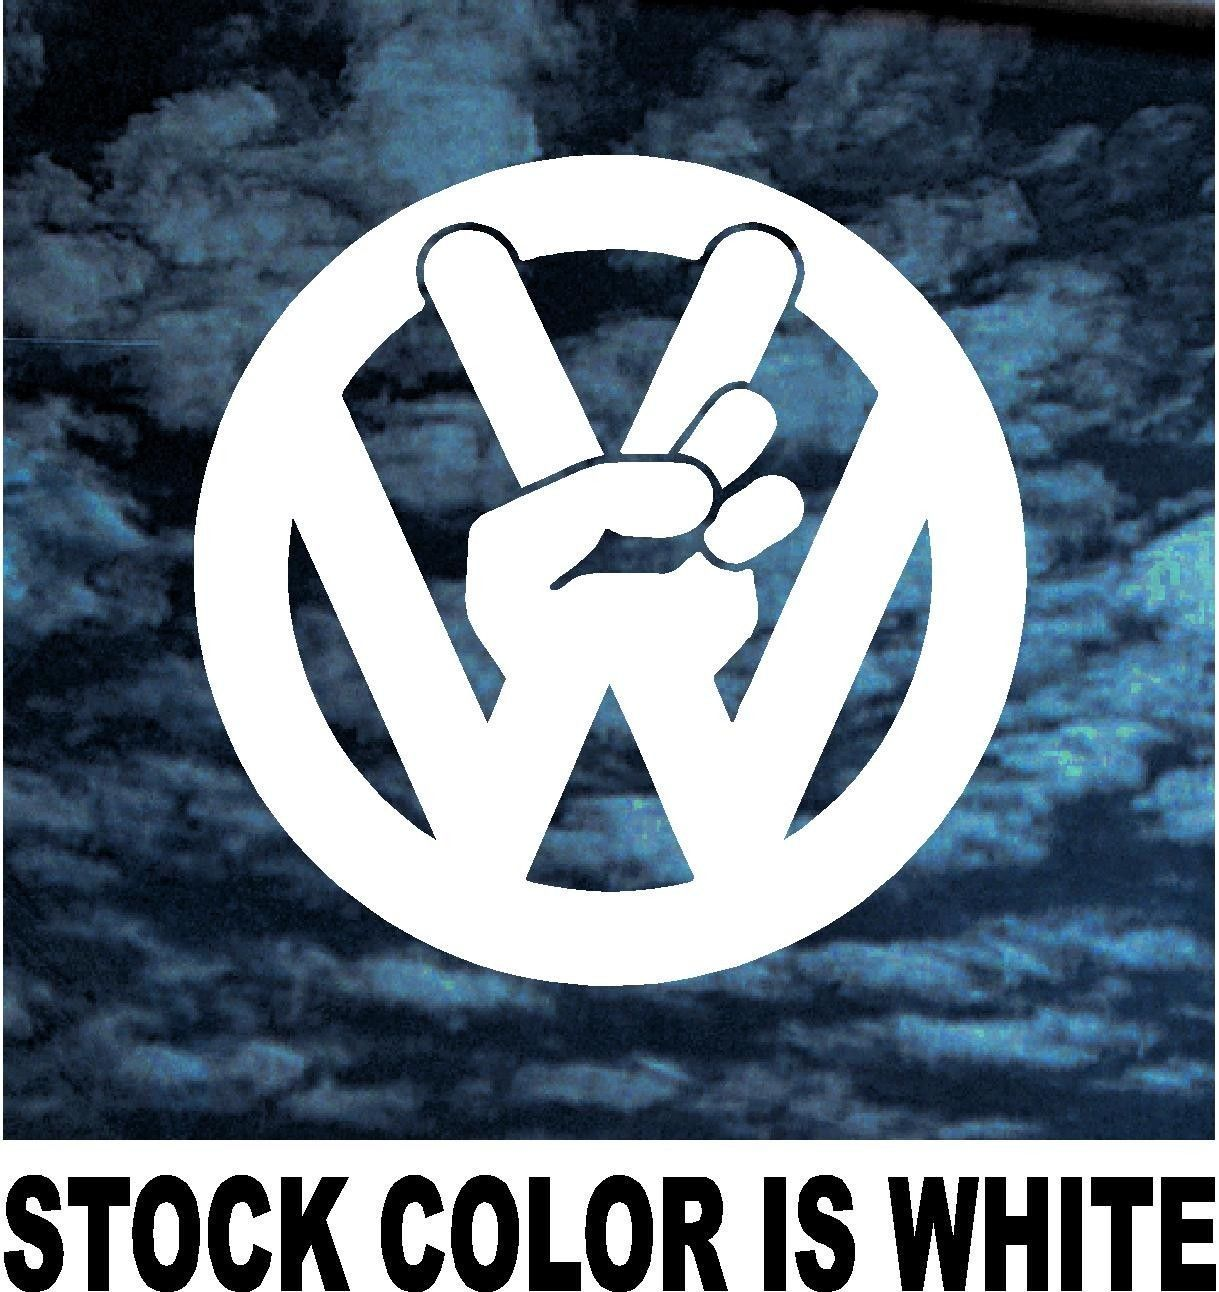 2 Vw Volkswagen Peace Sign Decal Sticker Car Truck